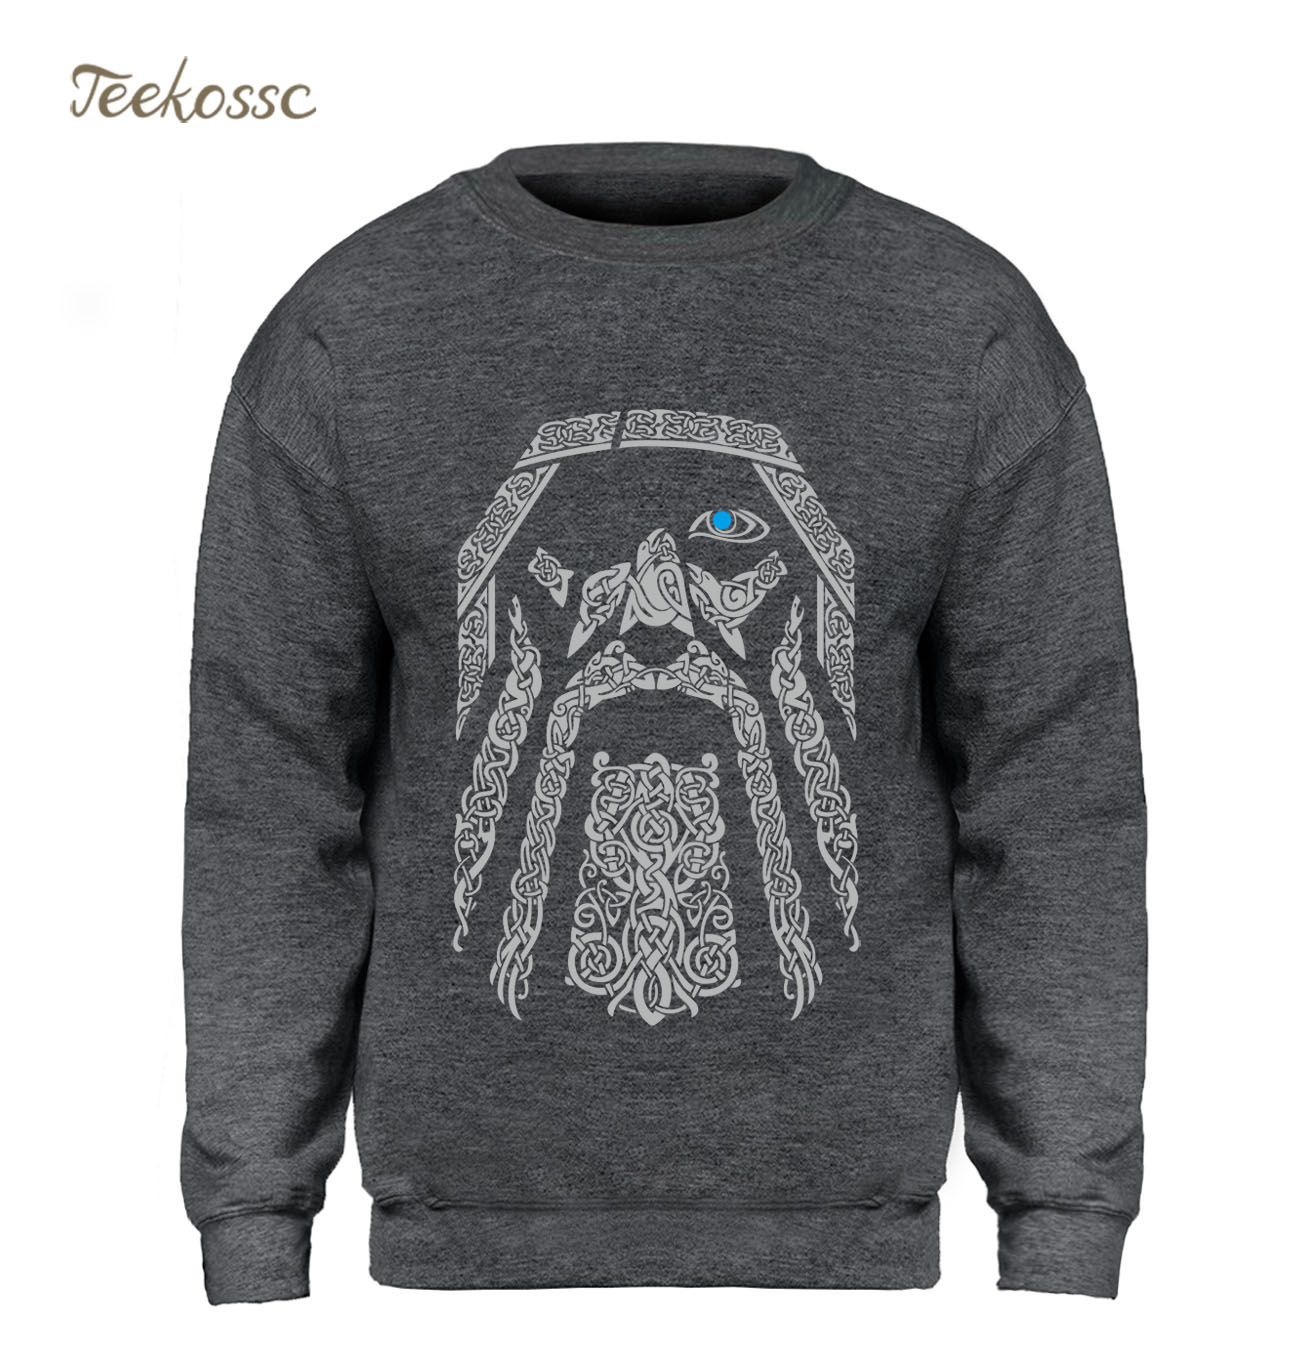 Odin Vikings Vintage Hoodie Men Sweatshirt Crewneck Sweatshirts 2018 Winter Autumn Fleece Warm Father's Day Gifts Pullover Coat